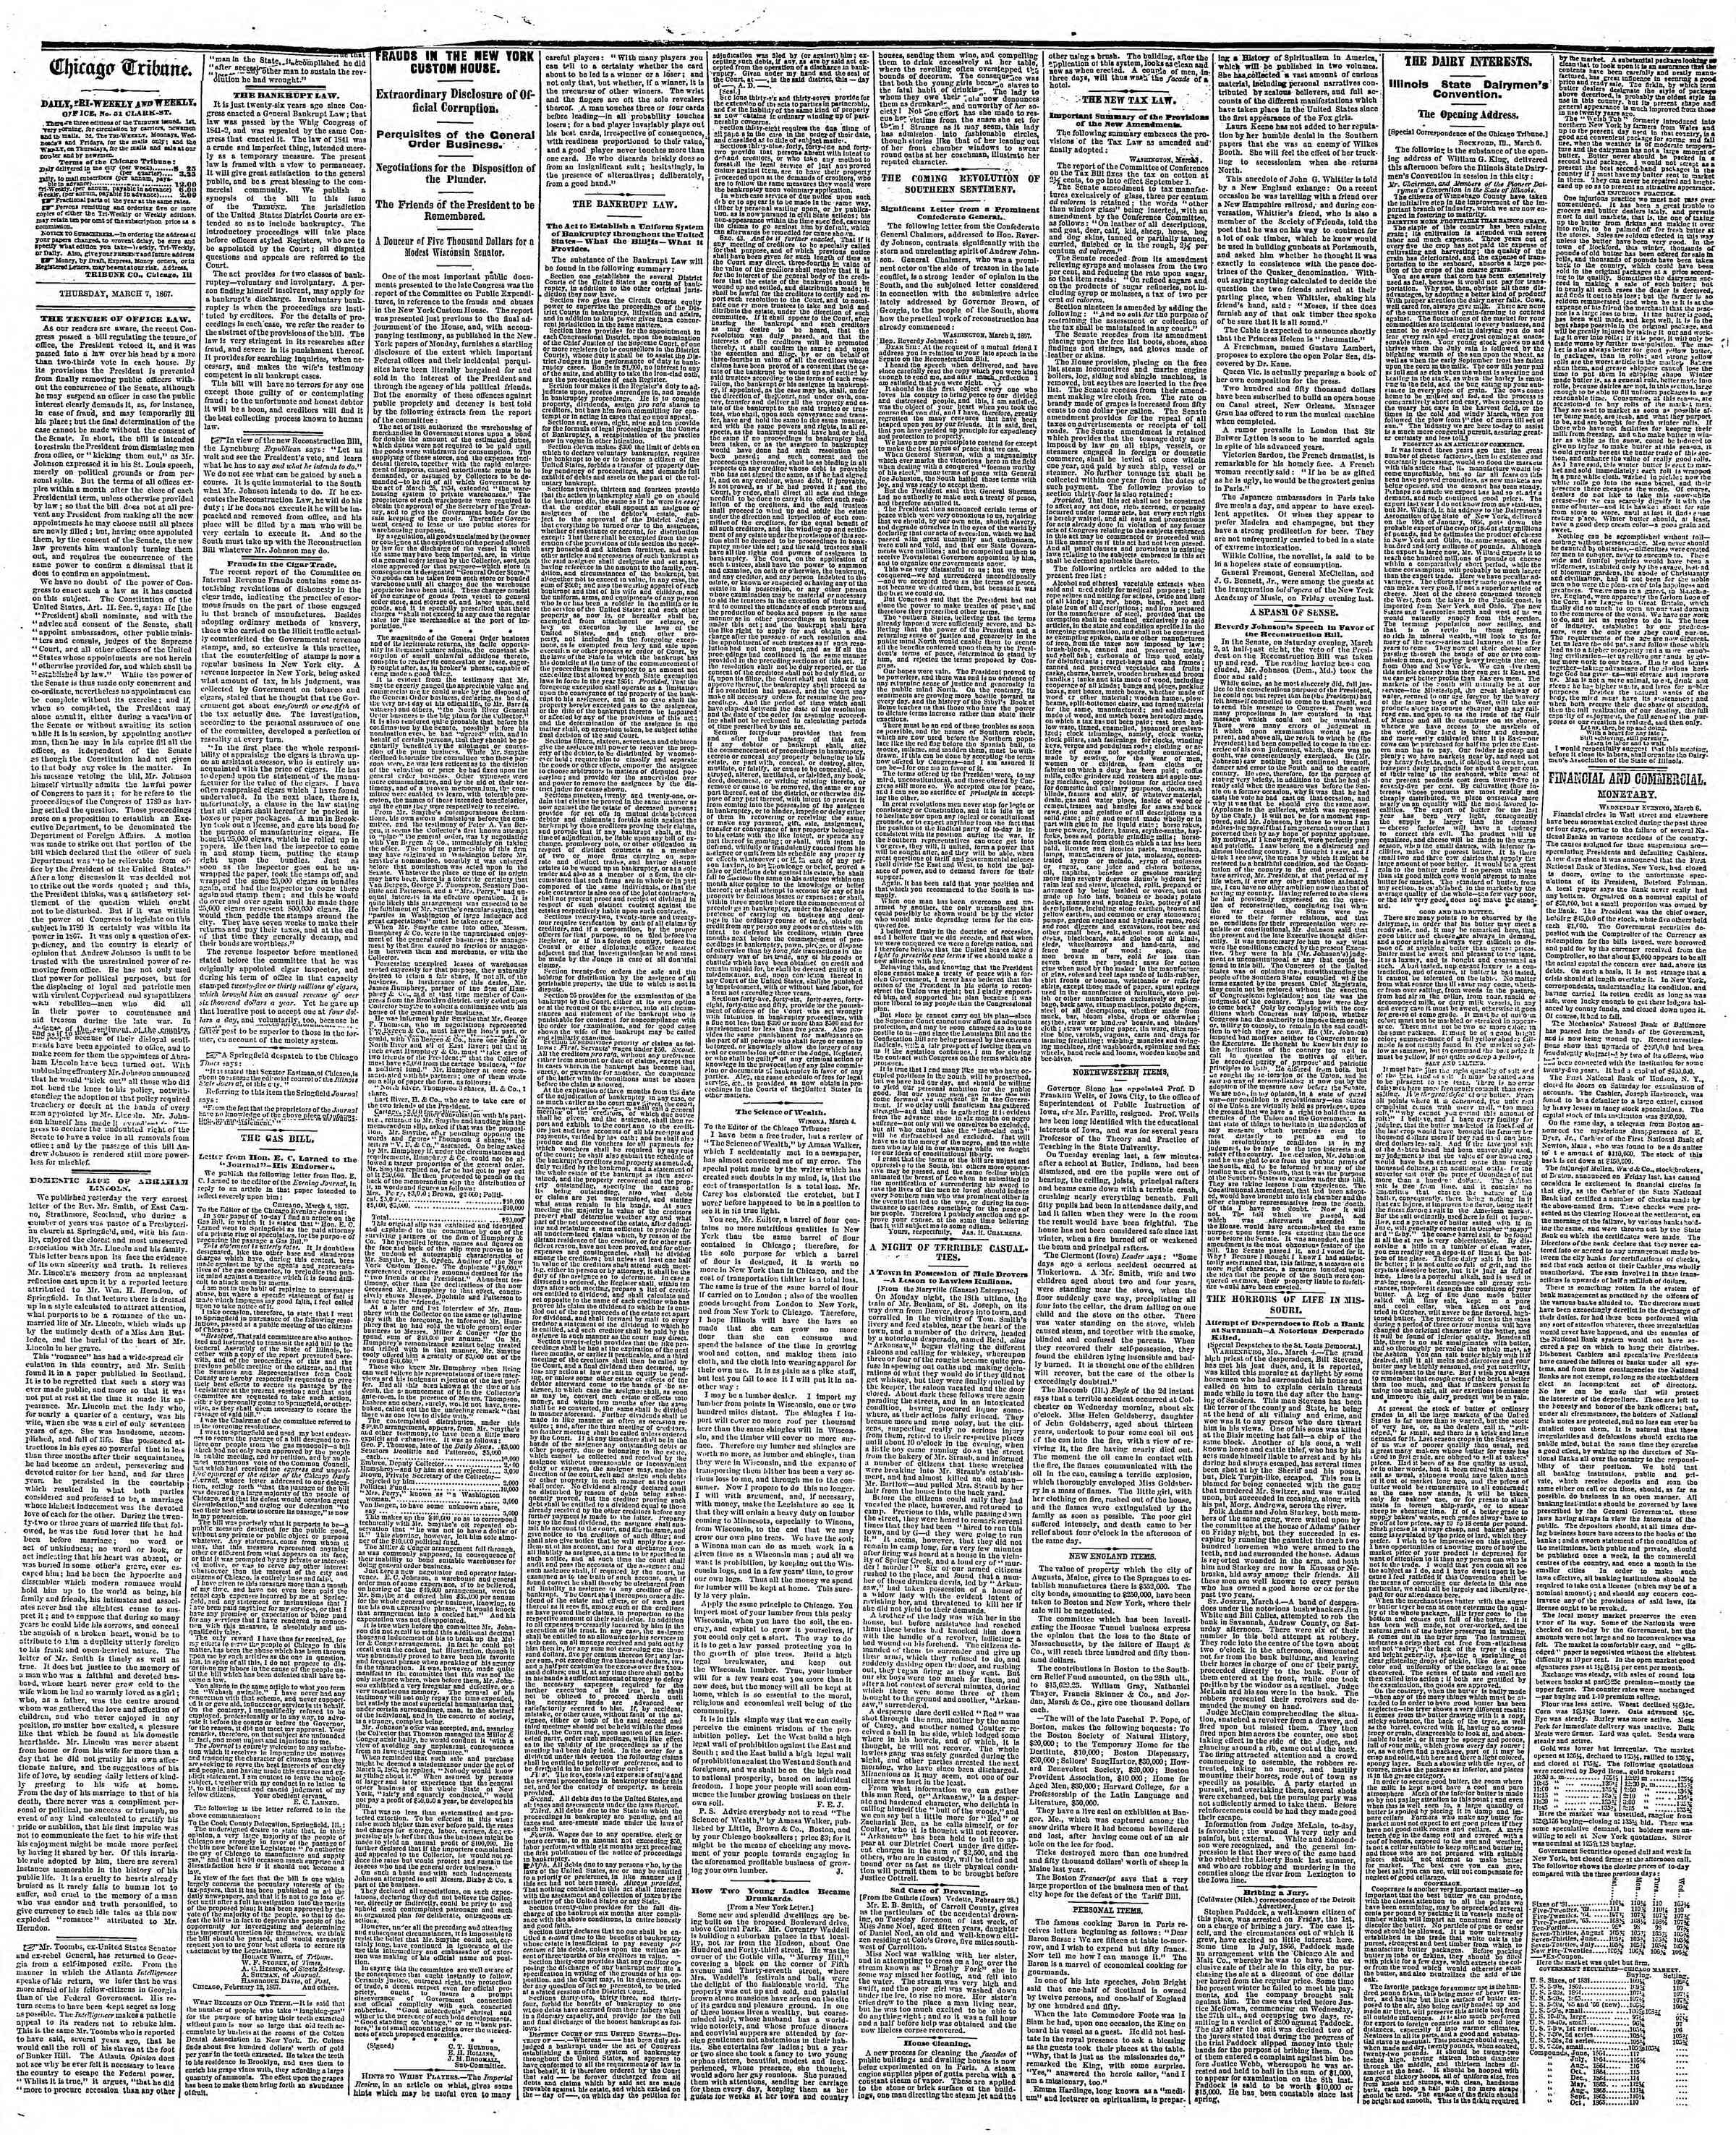 Newspaper of The Chicago Tribune dated March 7, 1867 Page 2